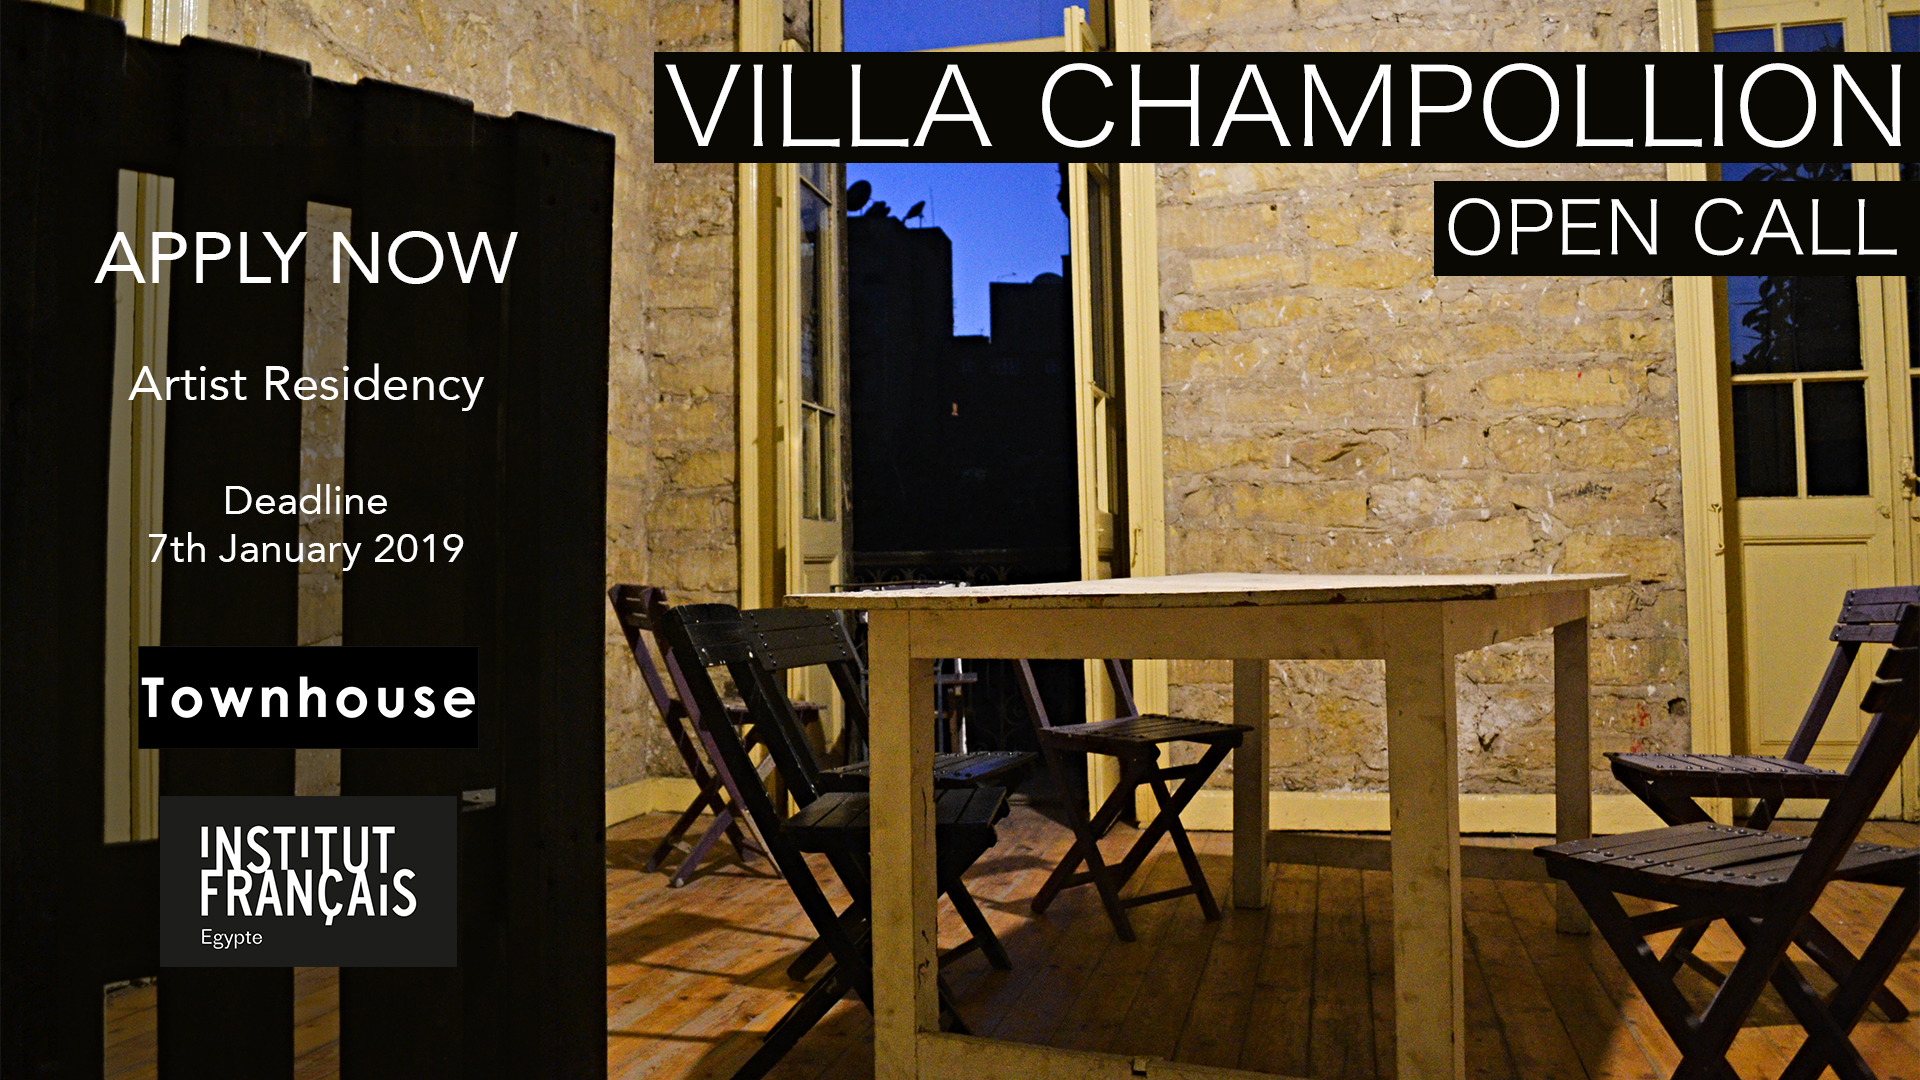 ART RESIDENCY | Villa Champollion